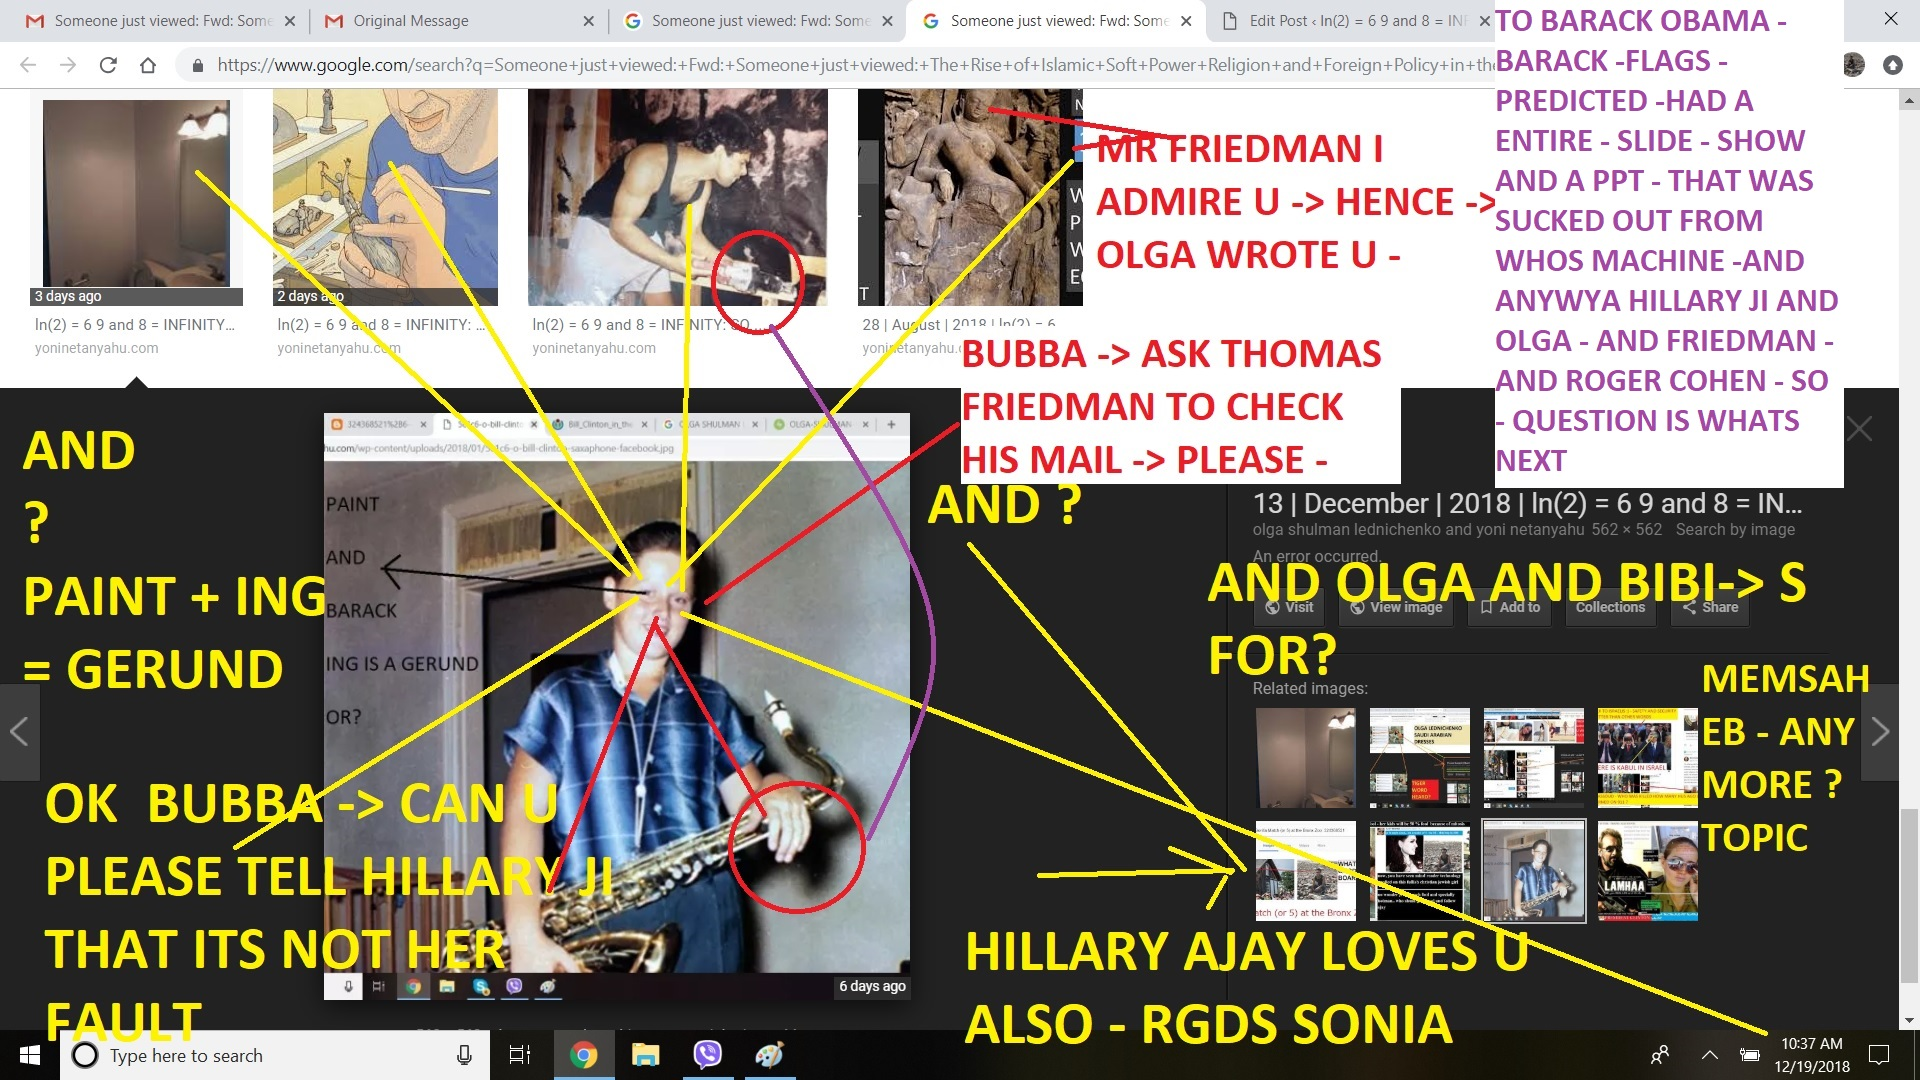 TO BARACK OBAMA - BARACK -FLAGS - PREDICTED -HAD A ENTIRE - SLIDE - SHOW AND A PPT - THAT WAS SUCKED OUT FROM WHOS MACHINE -AND ANYWYA HILLARY JI AND OLGA - AND FRIEDMAN - AND ROGER COHEN - SO - QUESTION IS WHATS NEXT